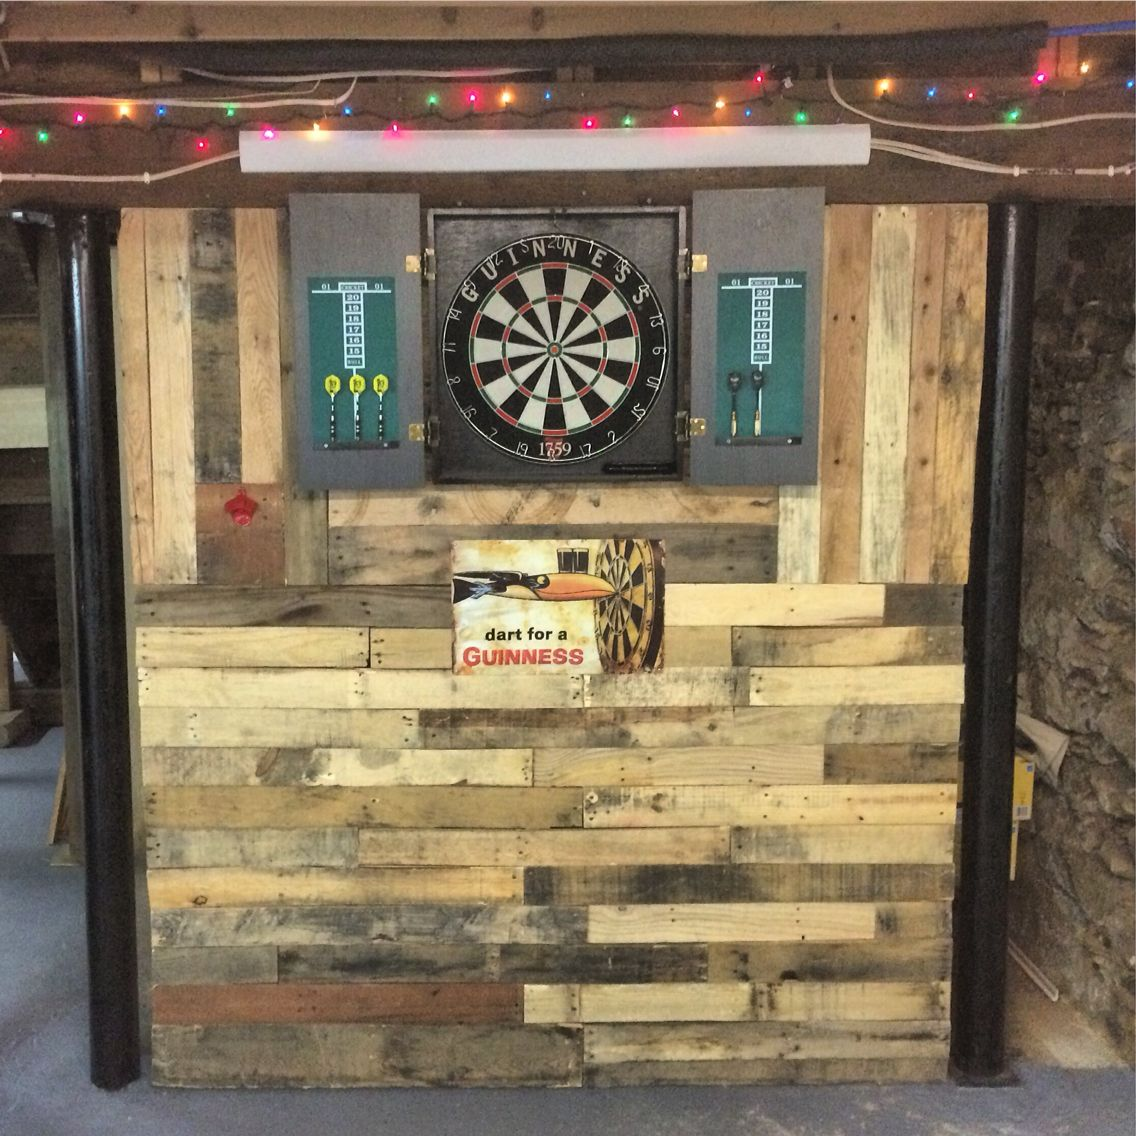 Pallet wall in man cave built for dart board. | House Ideas ...